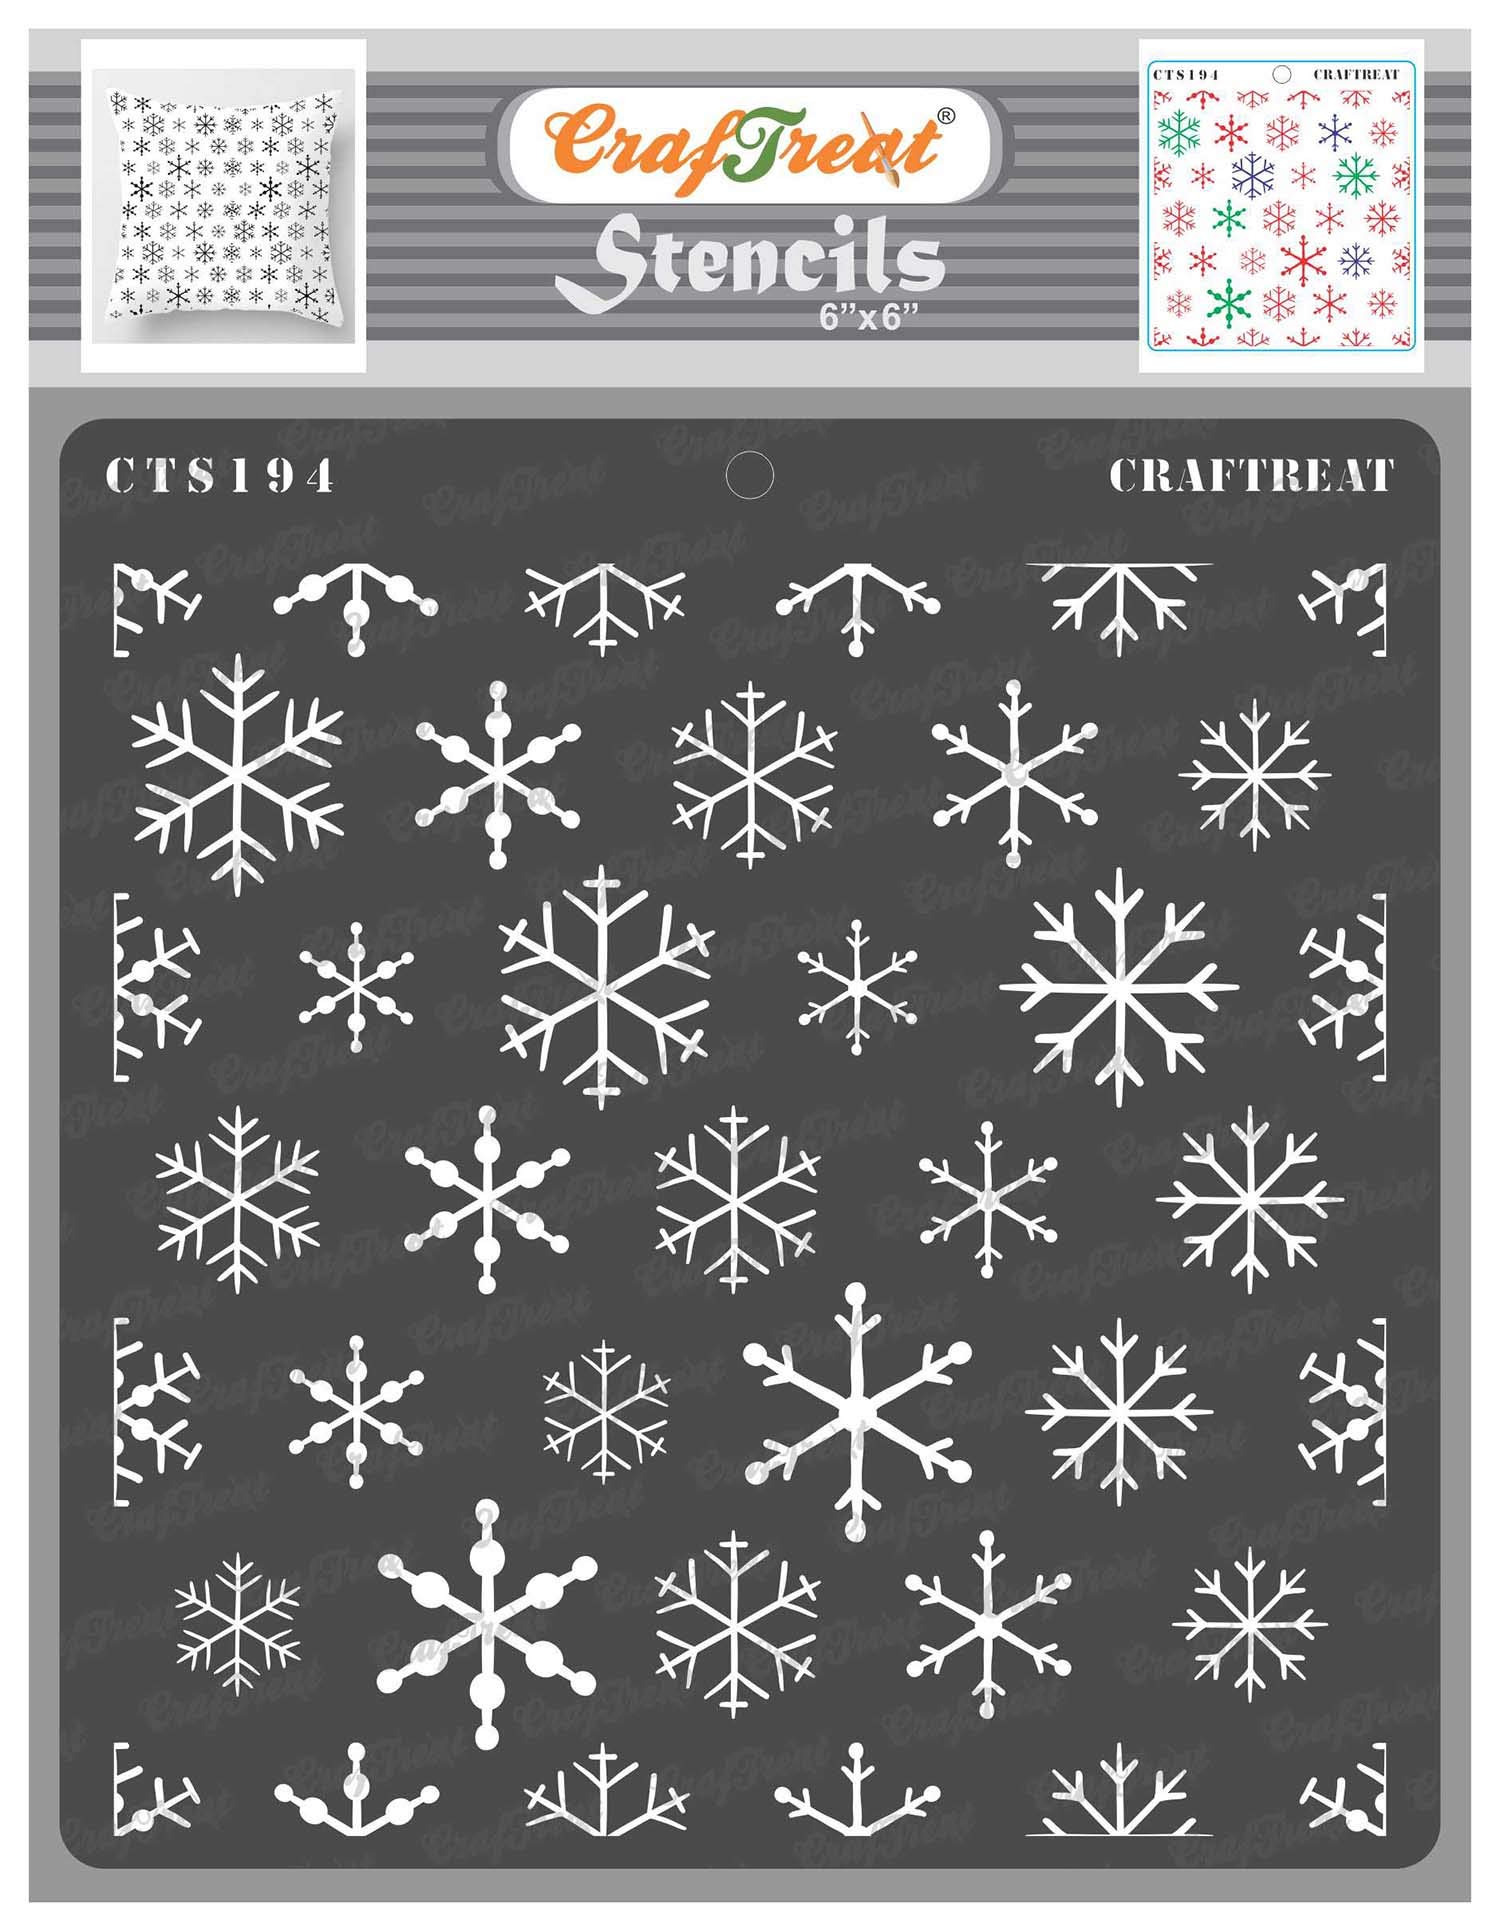 Merry Christmas Merry Christmas Stencils for Wood Signs Reusable Merry Christmas Stencil for Cards 3X12 Inches CrafTreat Merry Christmas Stencils for Painting on Wood